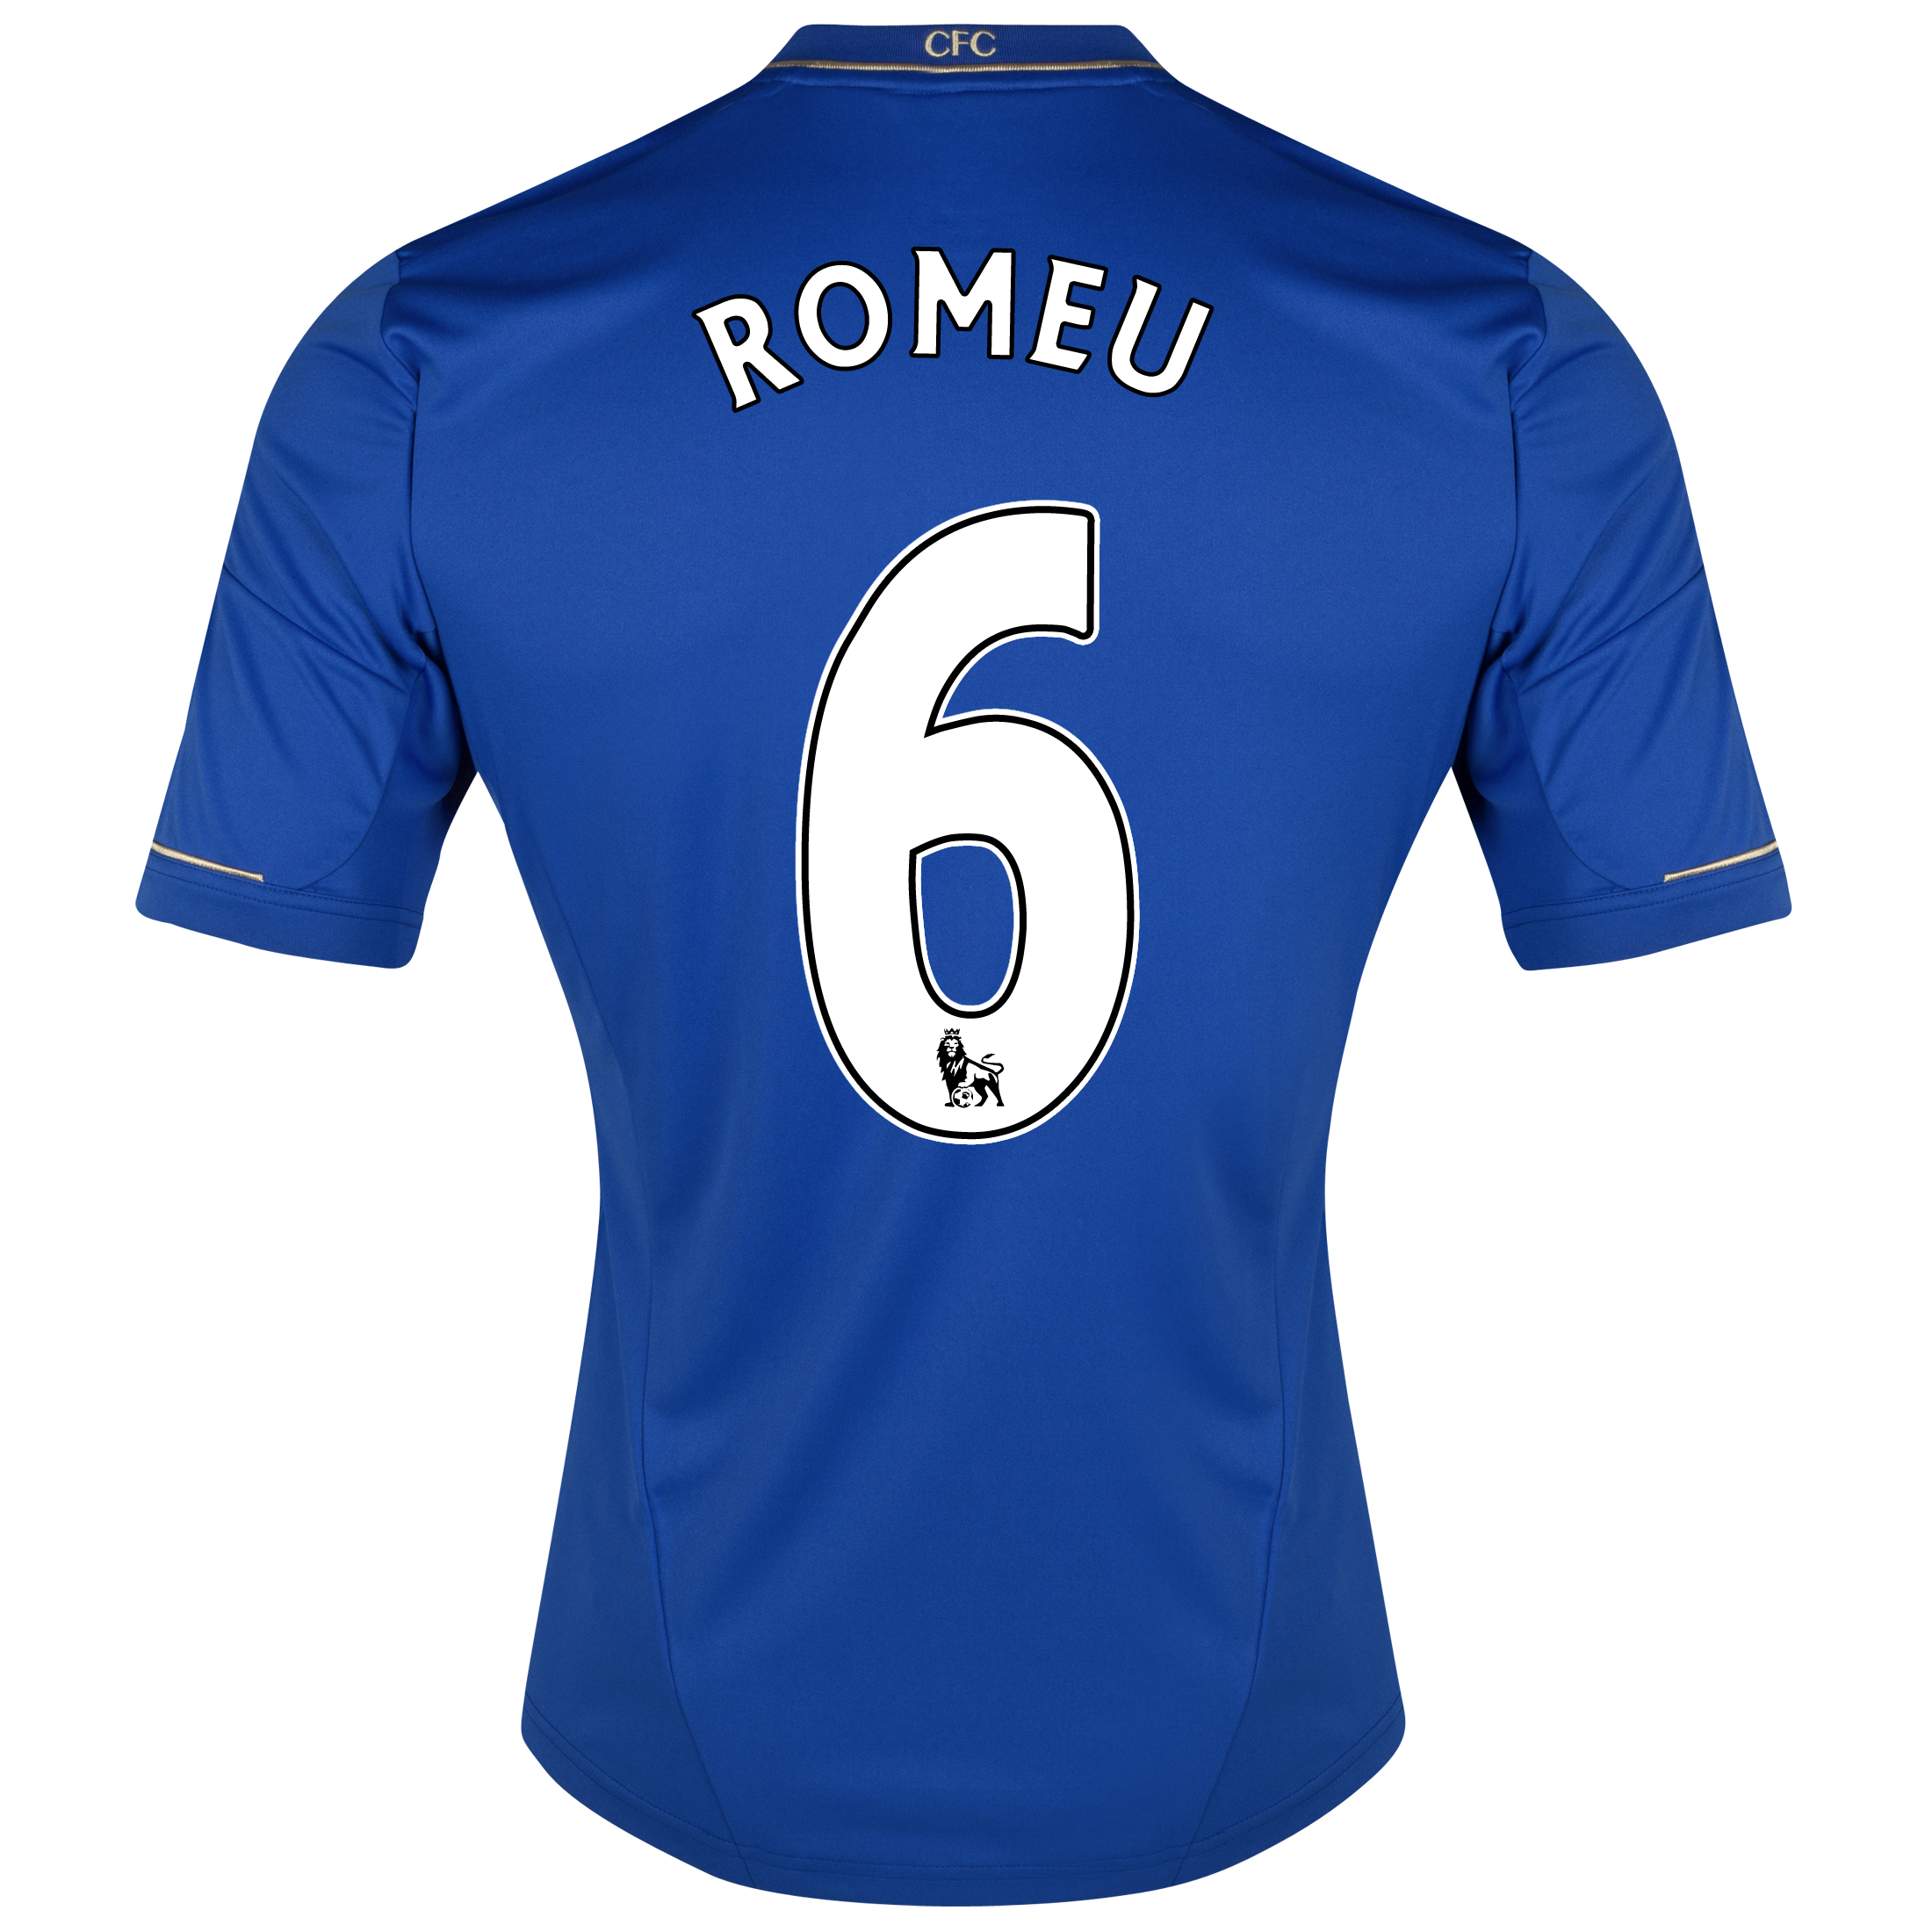 Chelsea Home Shirt 2012/13 - Youths with Romeu 6 printing